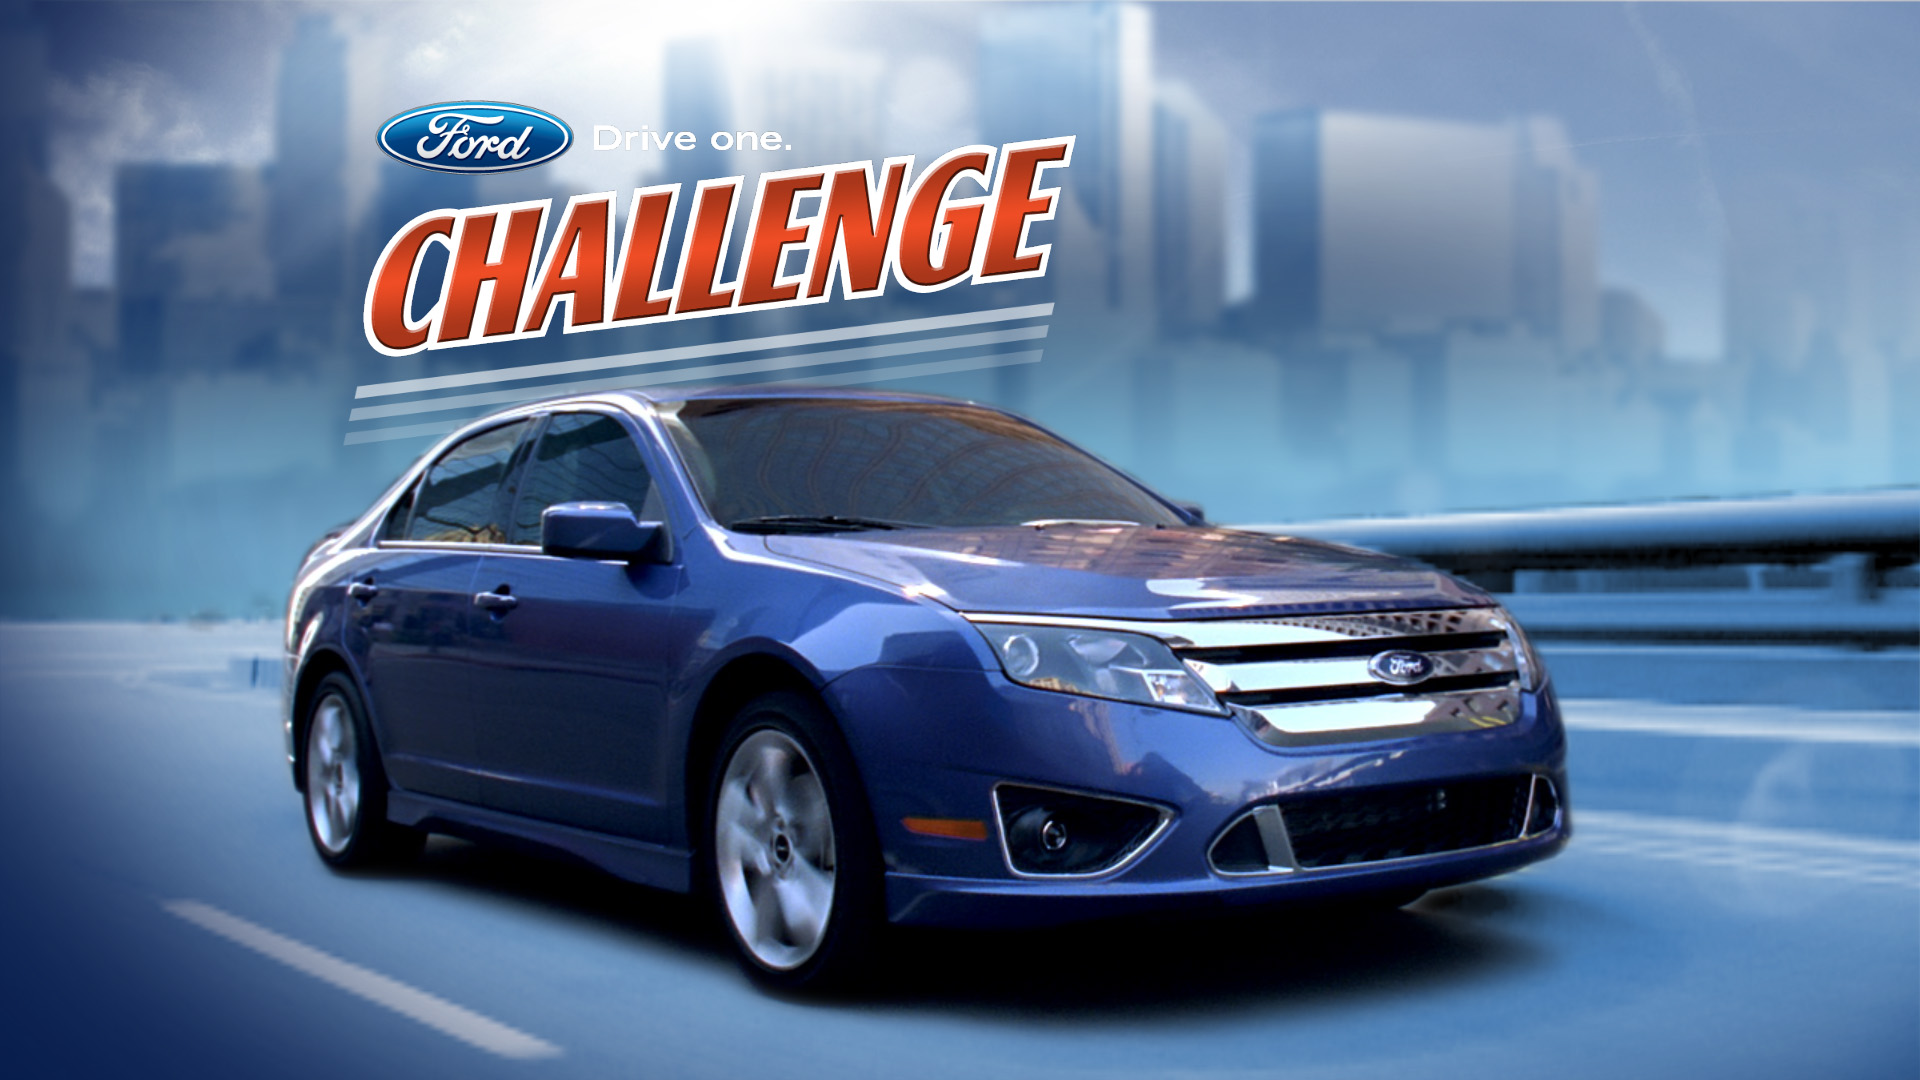 ford_drive_one_challenge_cars_image04